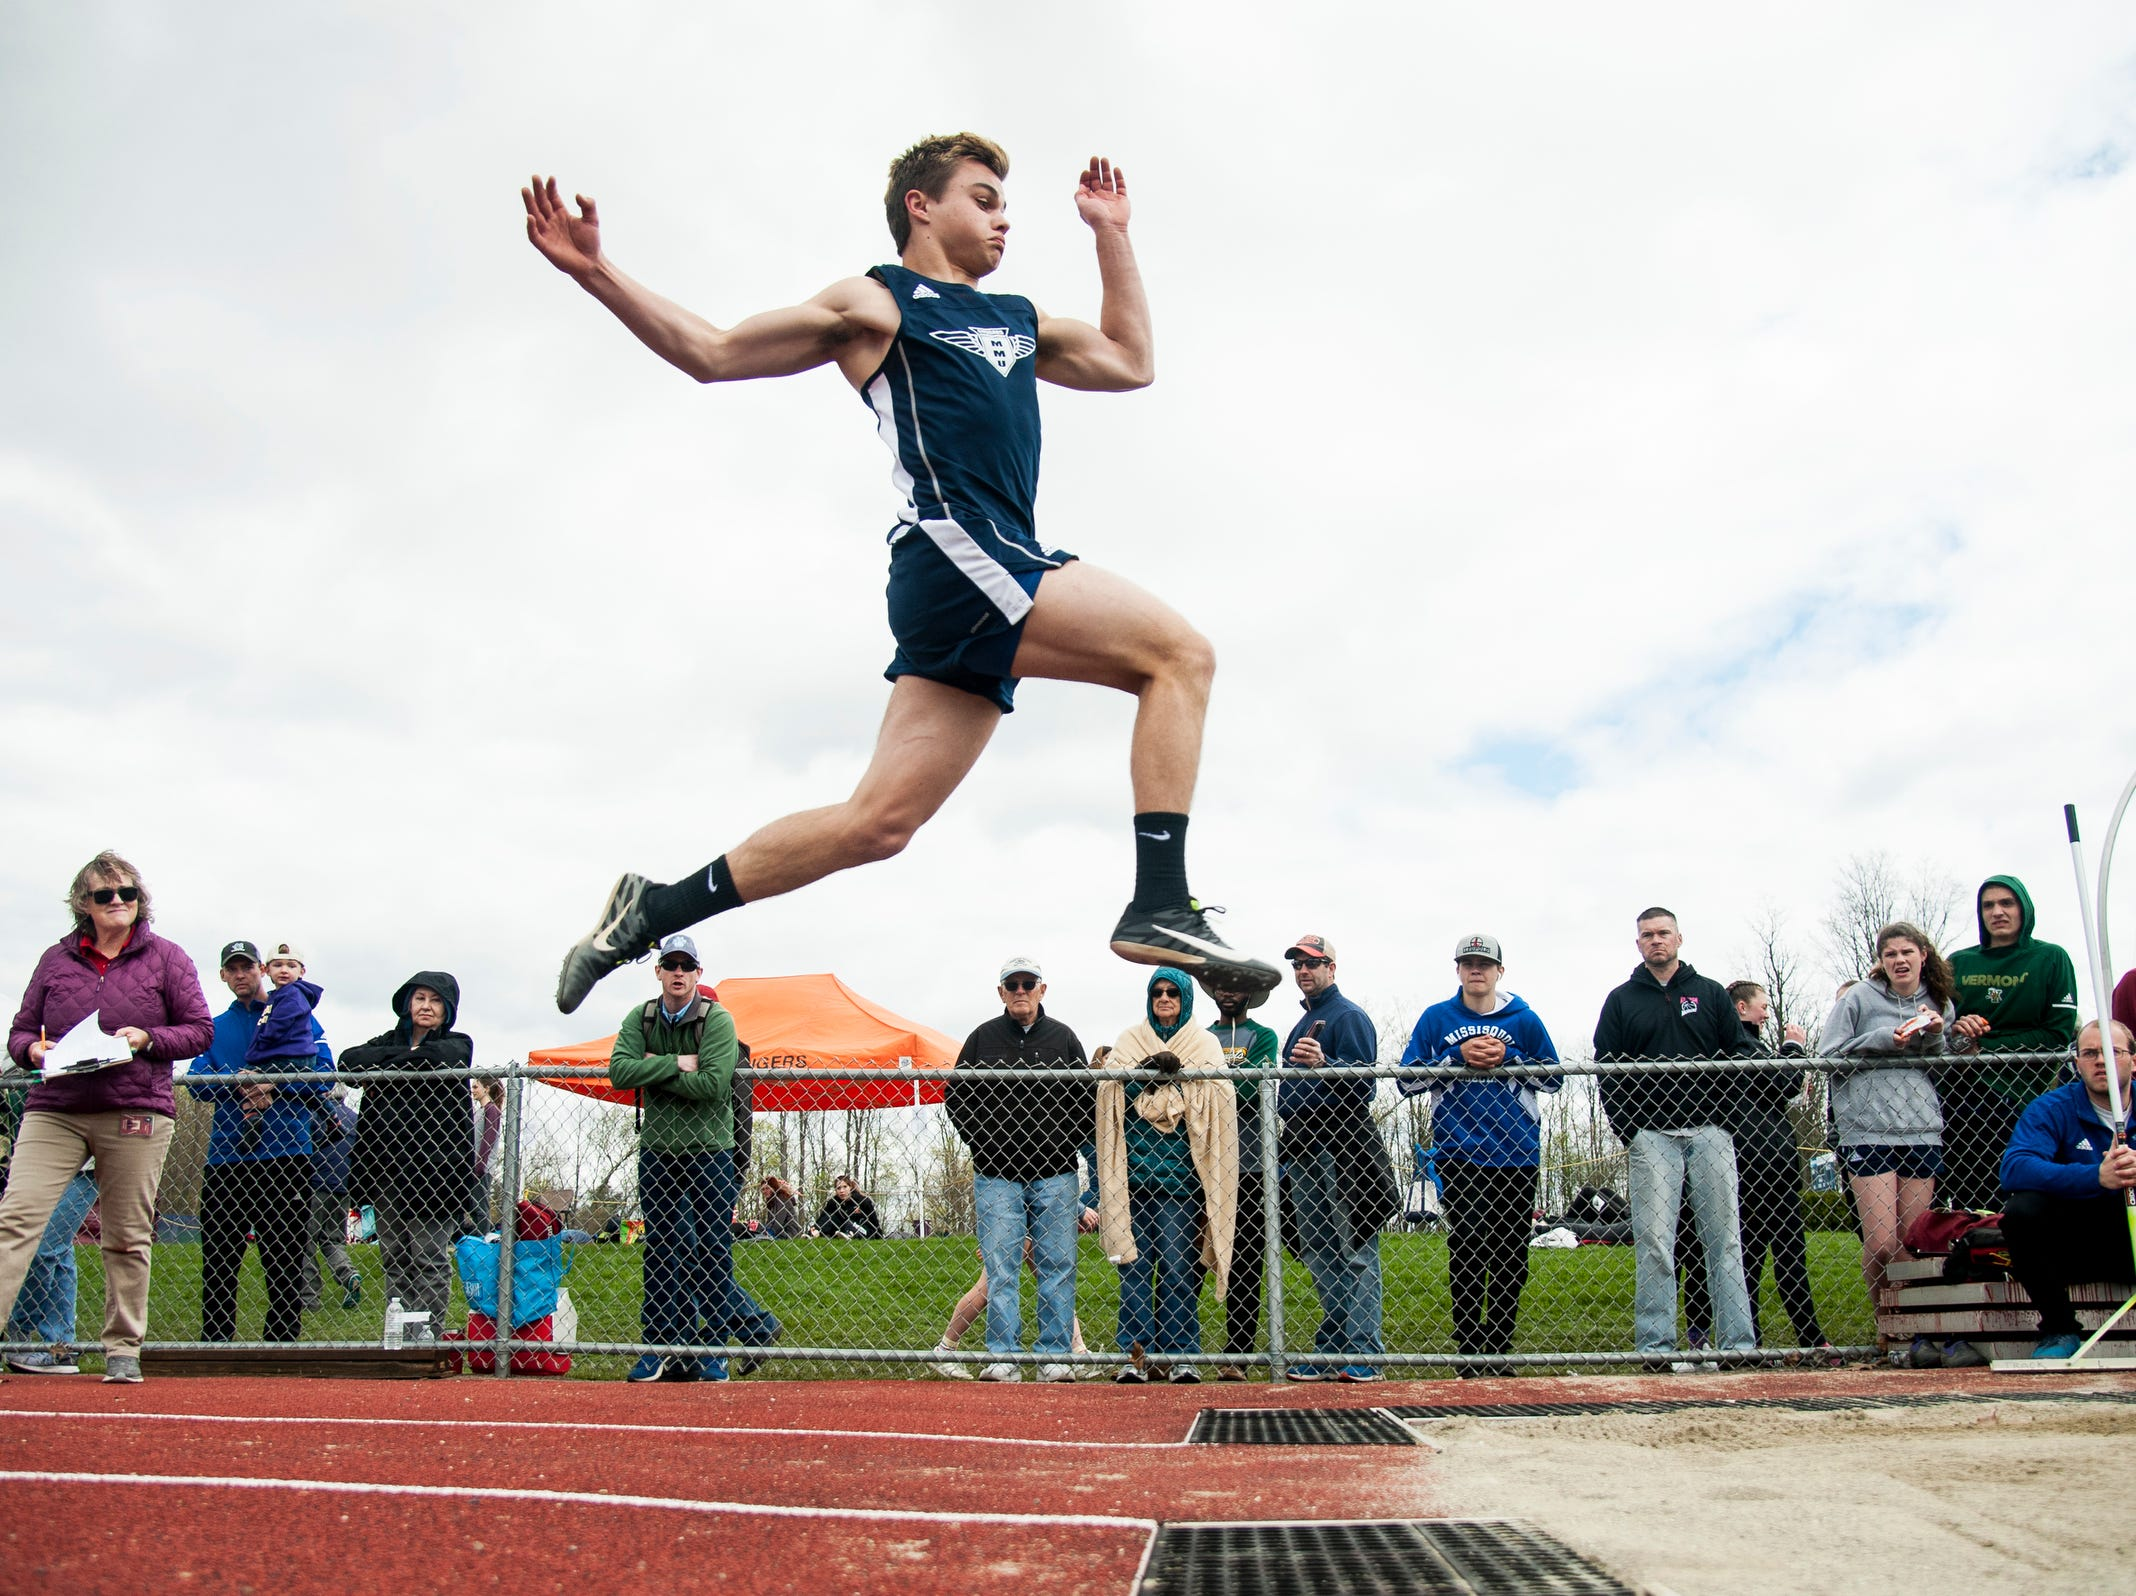 MMU's Will Hauf competes in the long jump during the Burlington Invitational high school track and field meet at Buck Hard Field on Saturday May 11, 2019 in Burlington, Vermont.